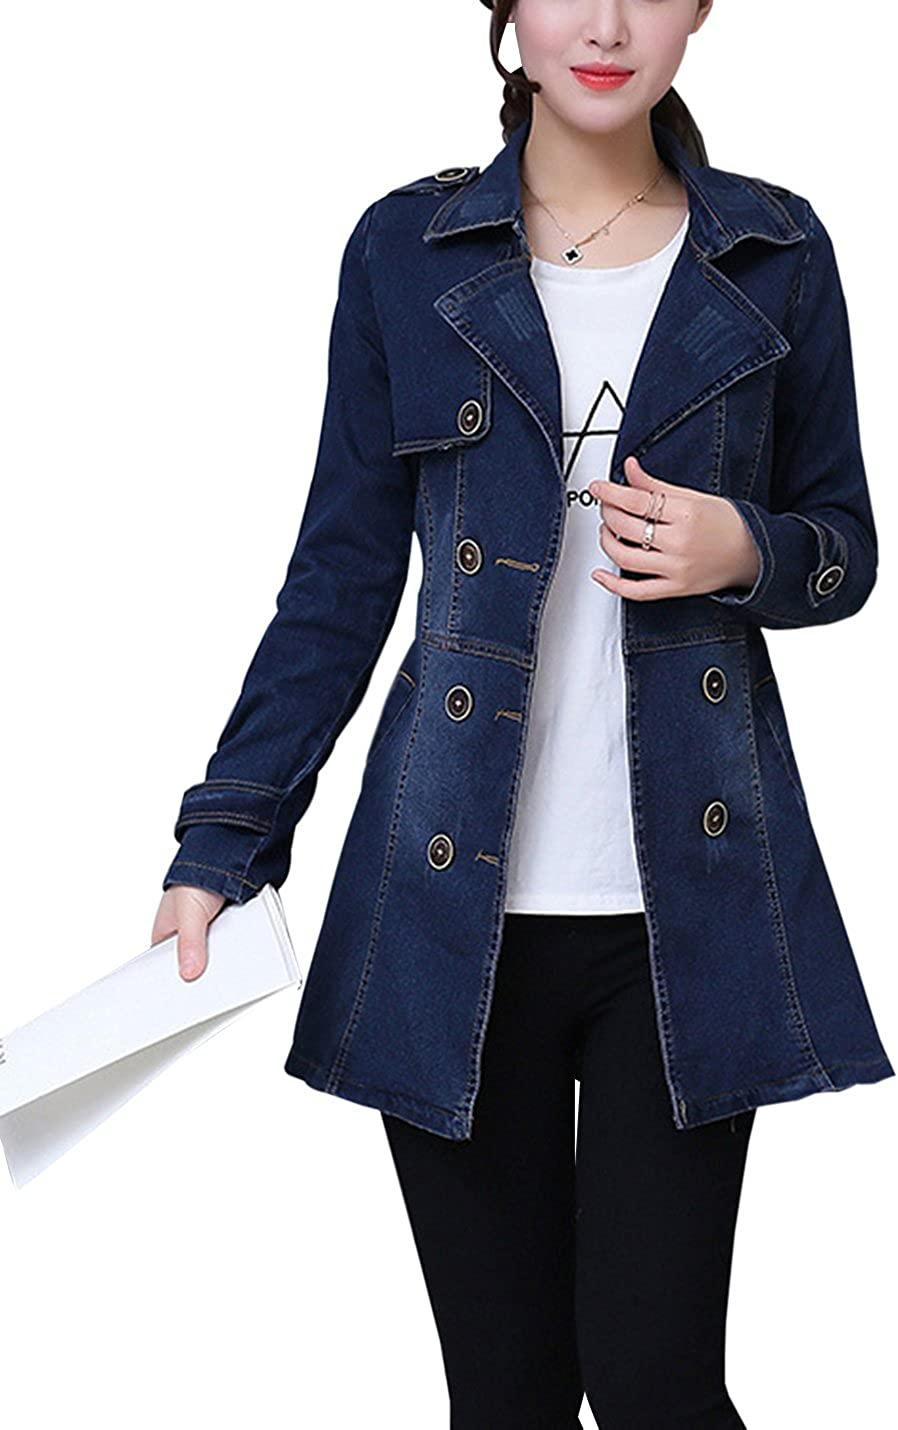 Gihuo Women's Casual Slim Fit Mid-Long Denim Jacket Double Breasted Belted Trench Coat (Blue, X-Small)